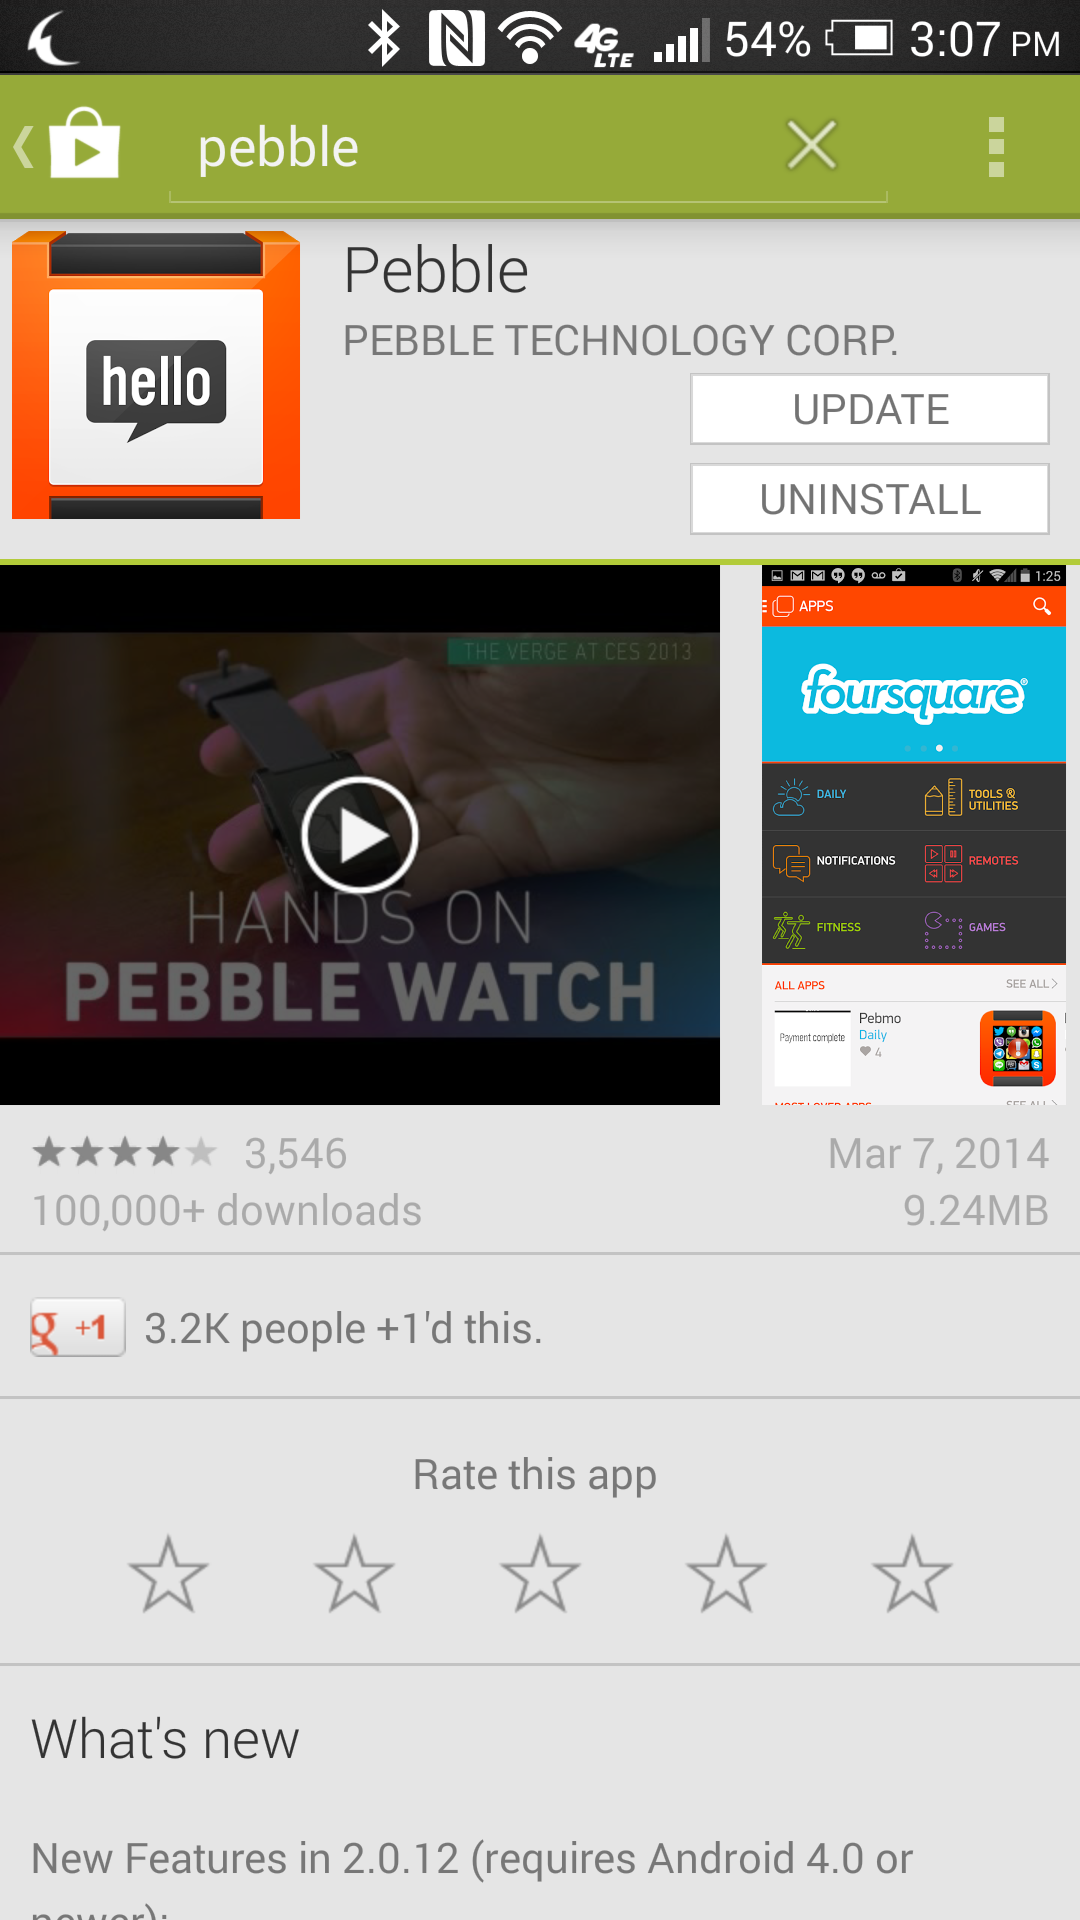 pebble 2.0 for ndroid